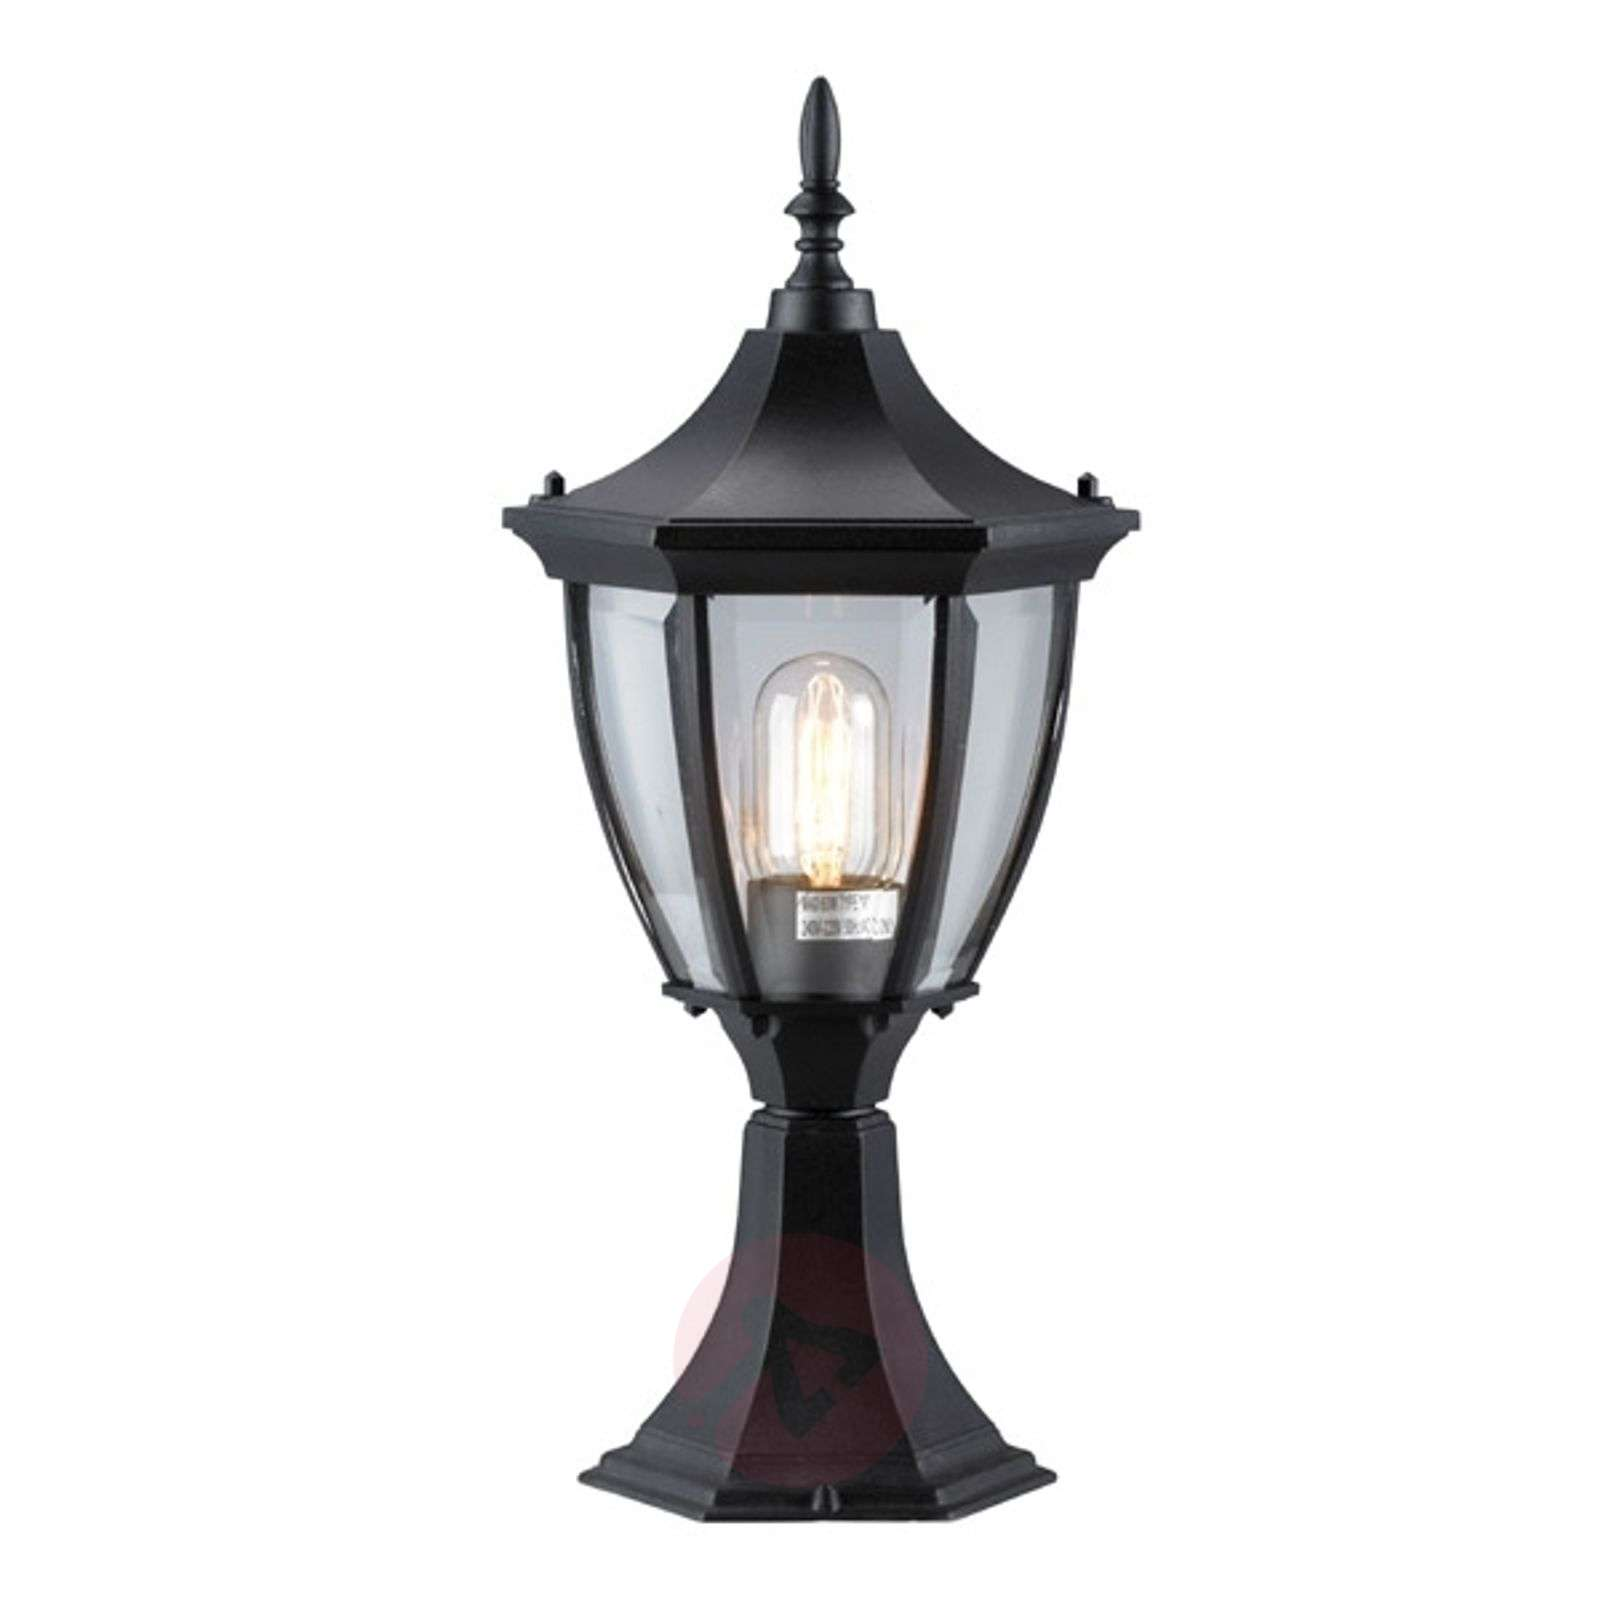 Elegant Jonna pillar light, black-6506050-01